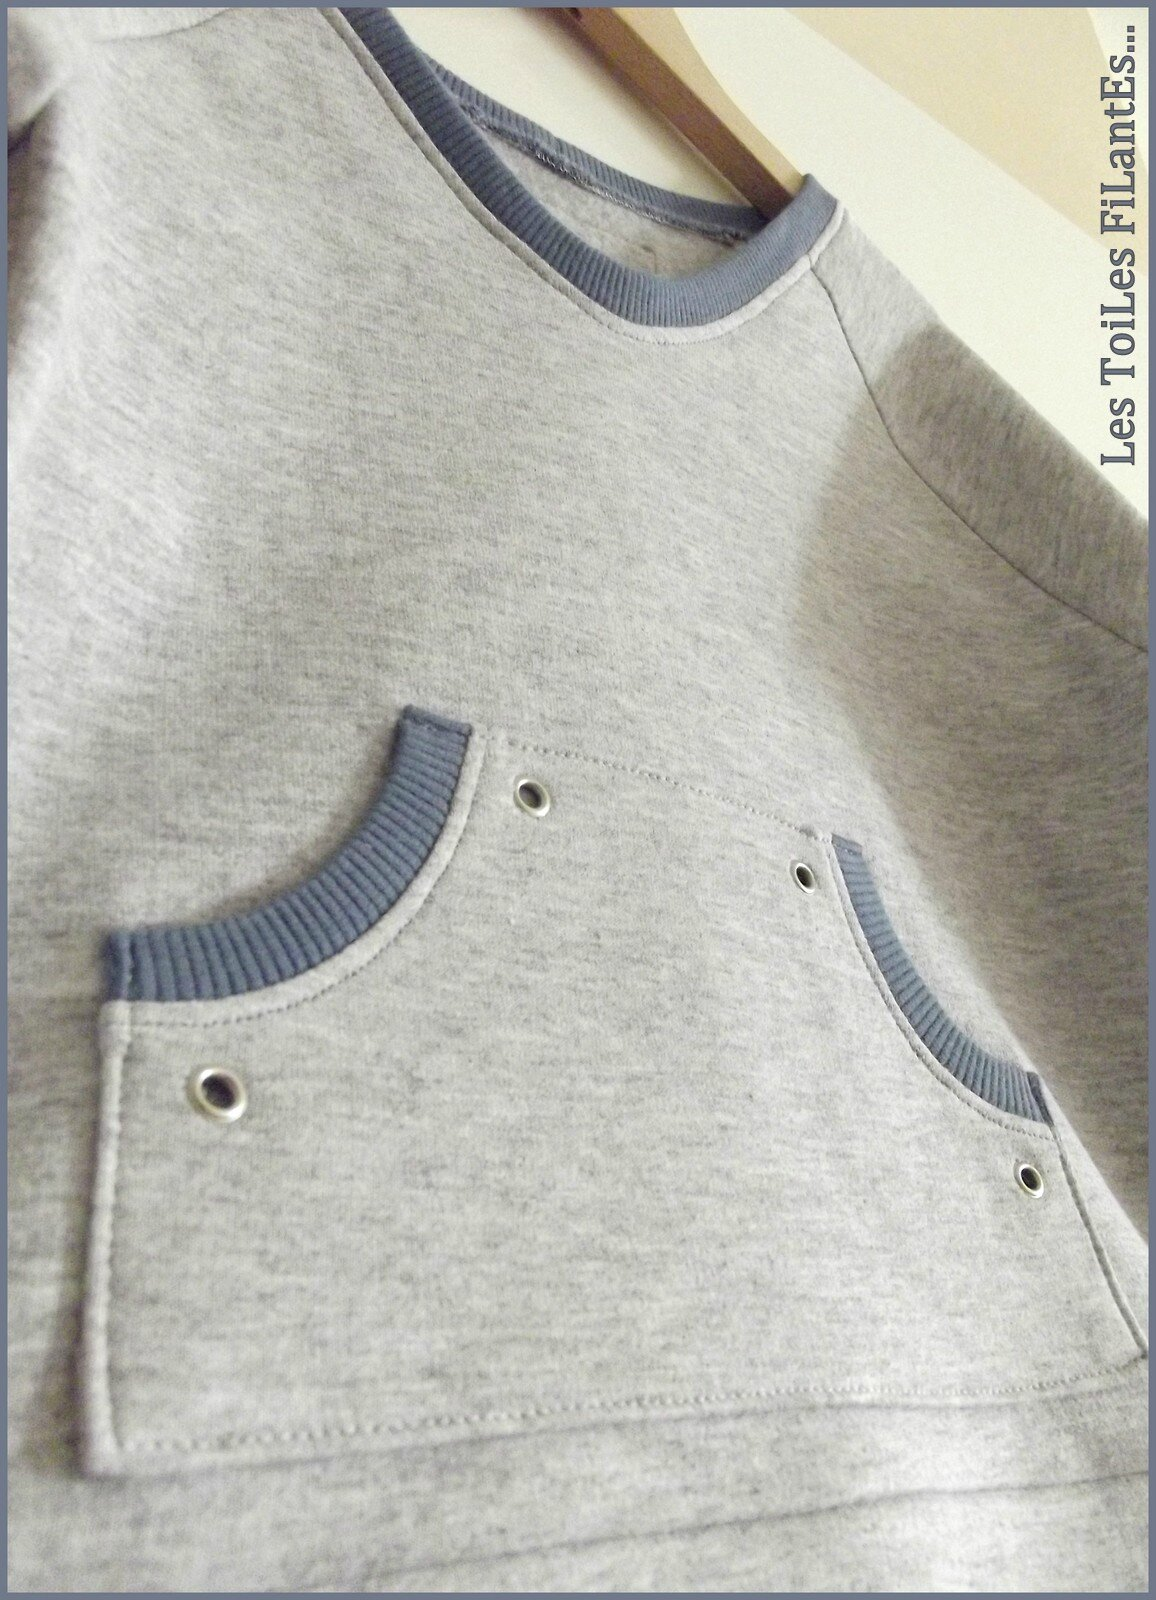 17-Ensemble jean sweat et tee-shirt bleu gris Aur�le15